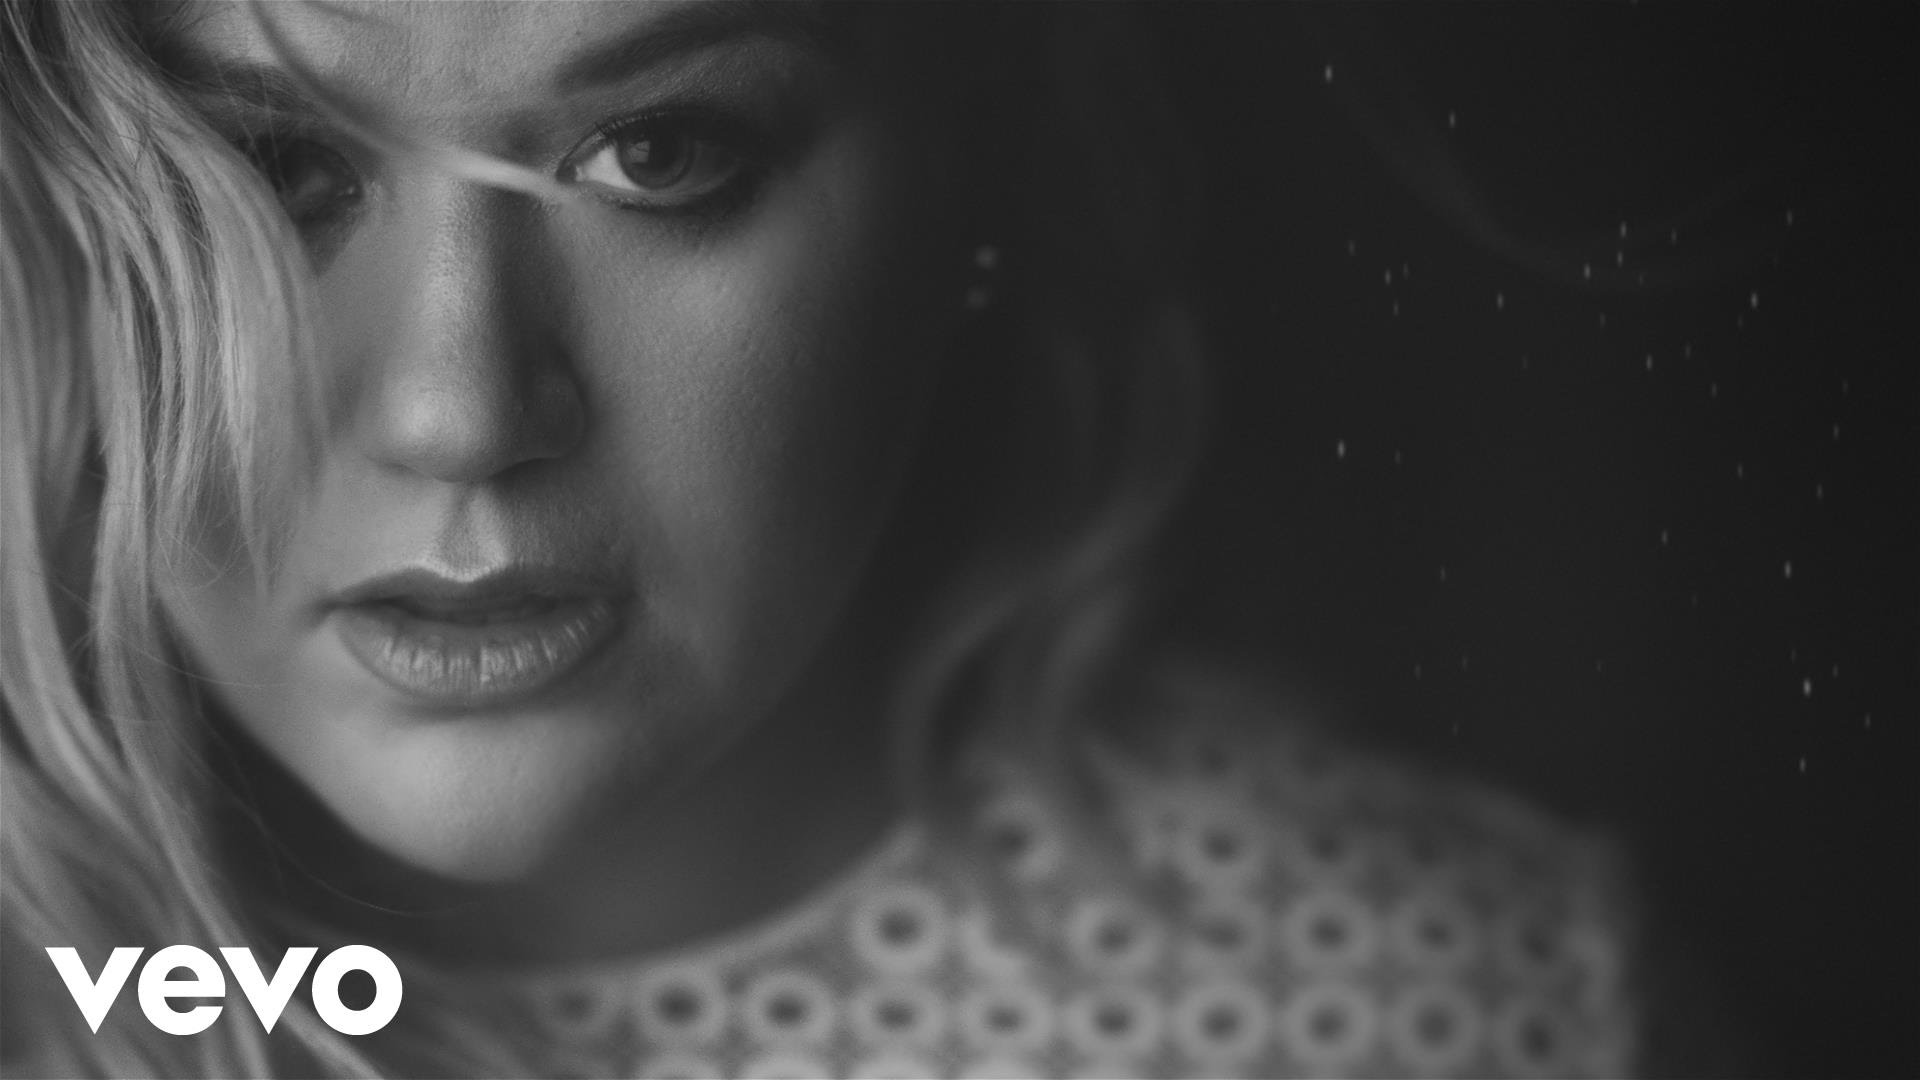 Kelly Clarkson teases new album that's 'got a lot of sass'